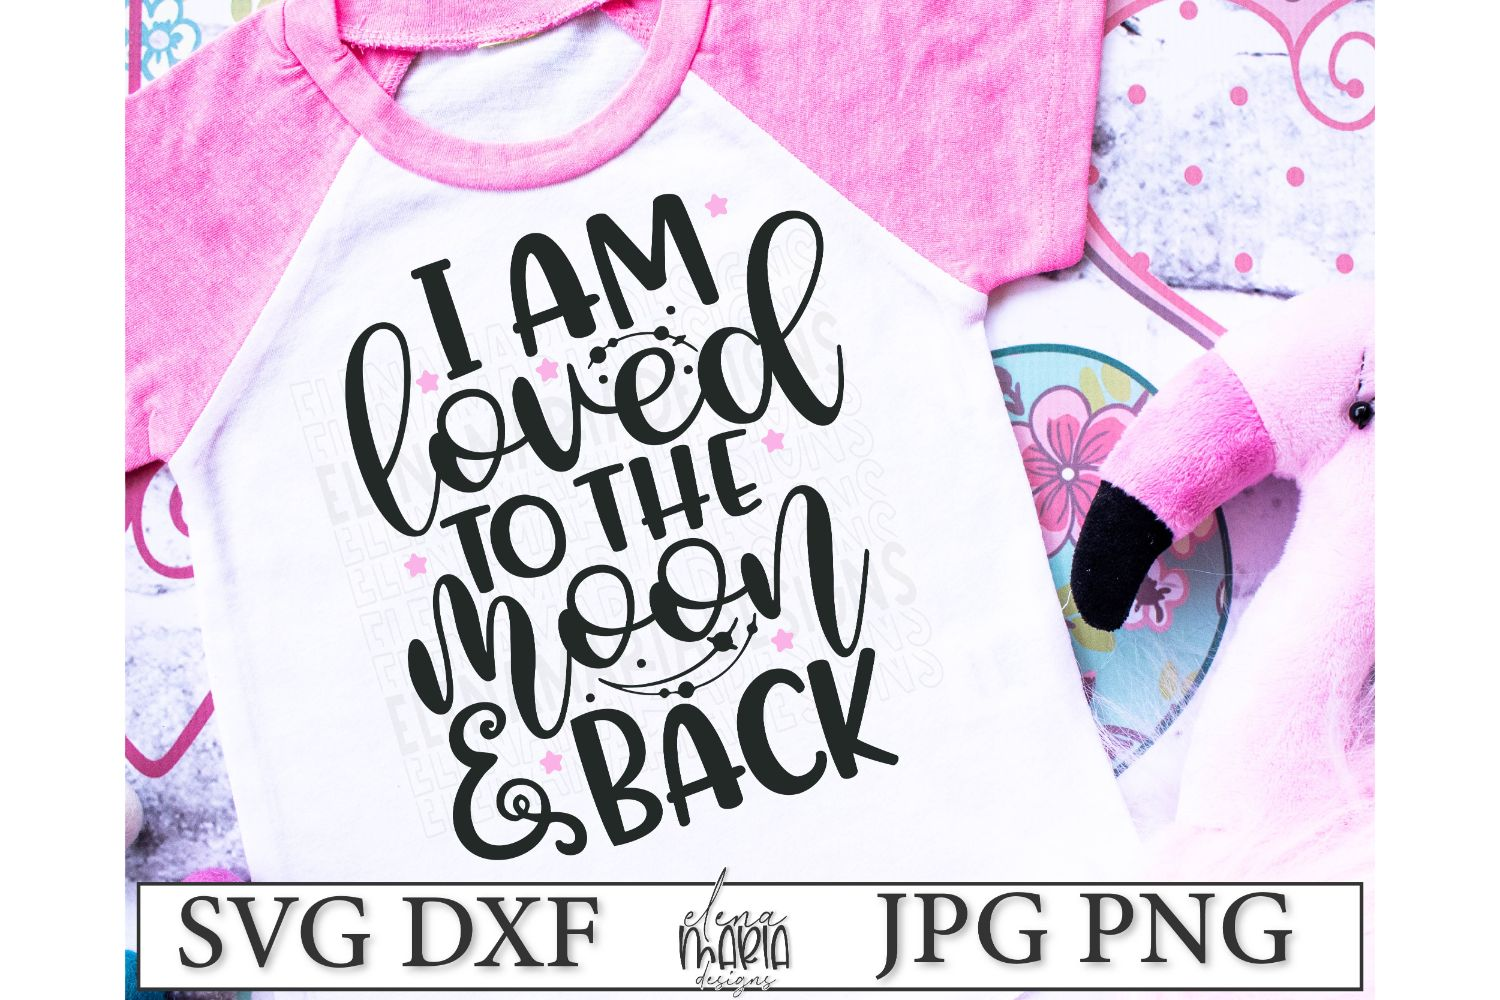 Loved To The Moon And Back | Kids Svg Dxf Png Jpg example image 1